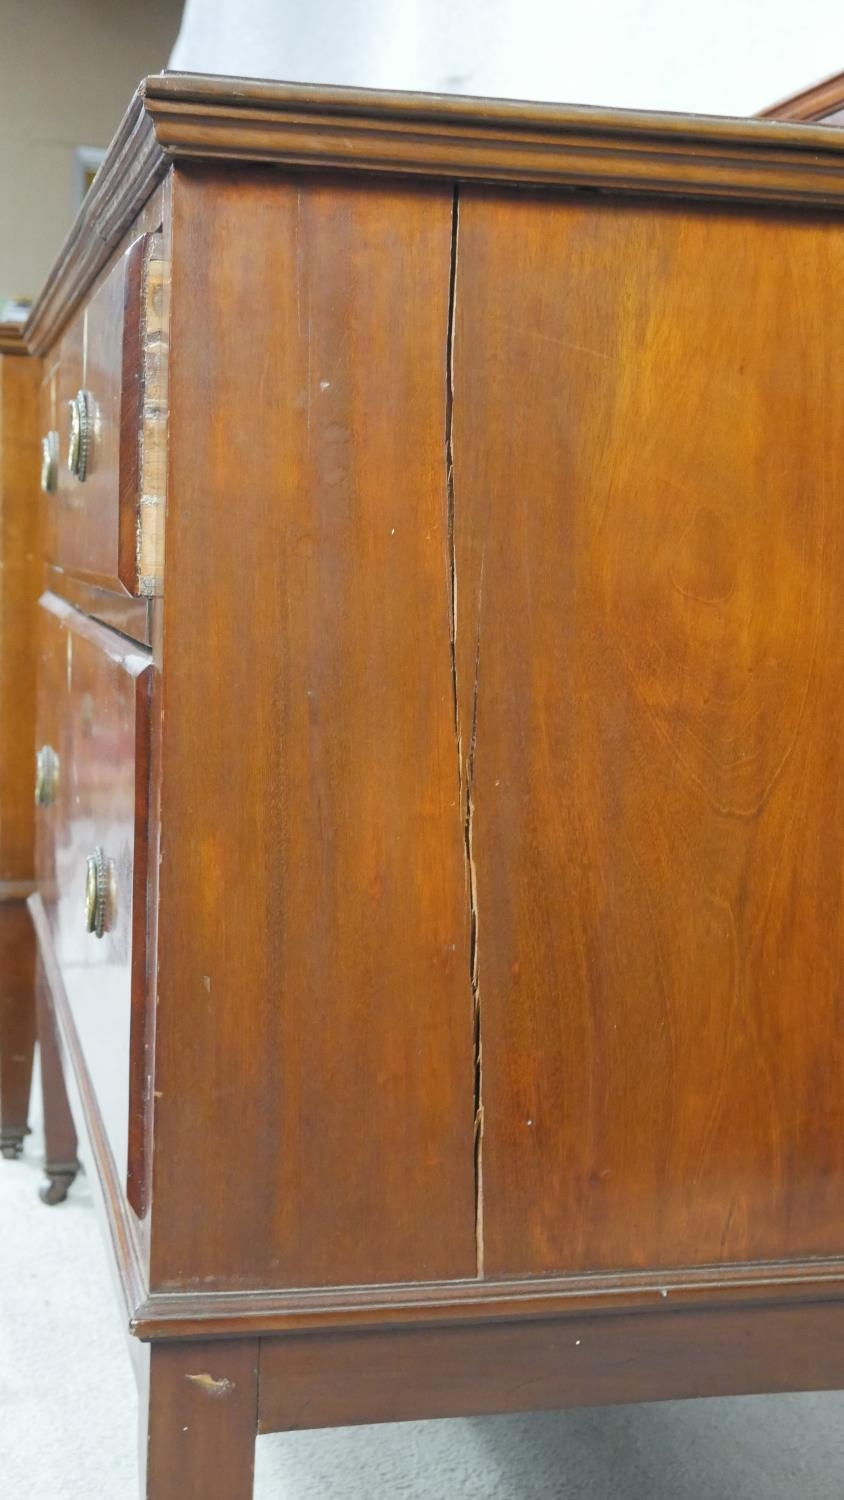 A pair of complementing early 20th century mahogany bedroom chests with ivory inset escutcheons - Image 6 of 10